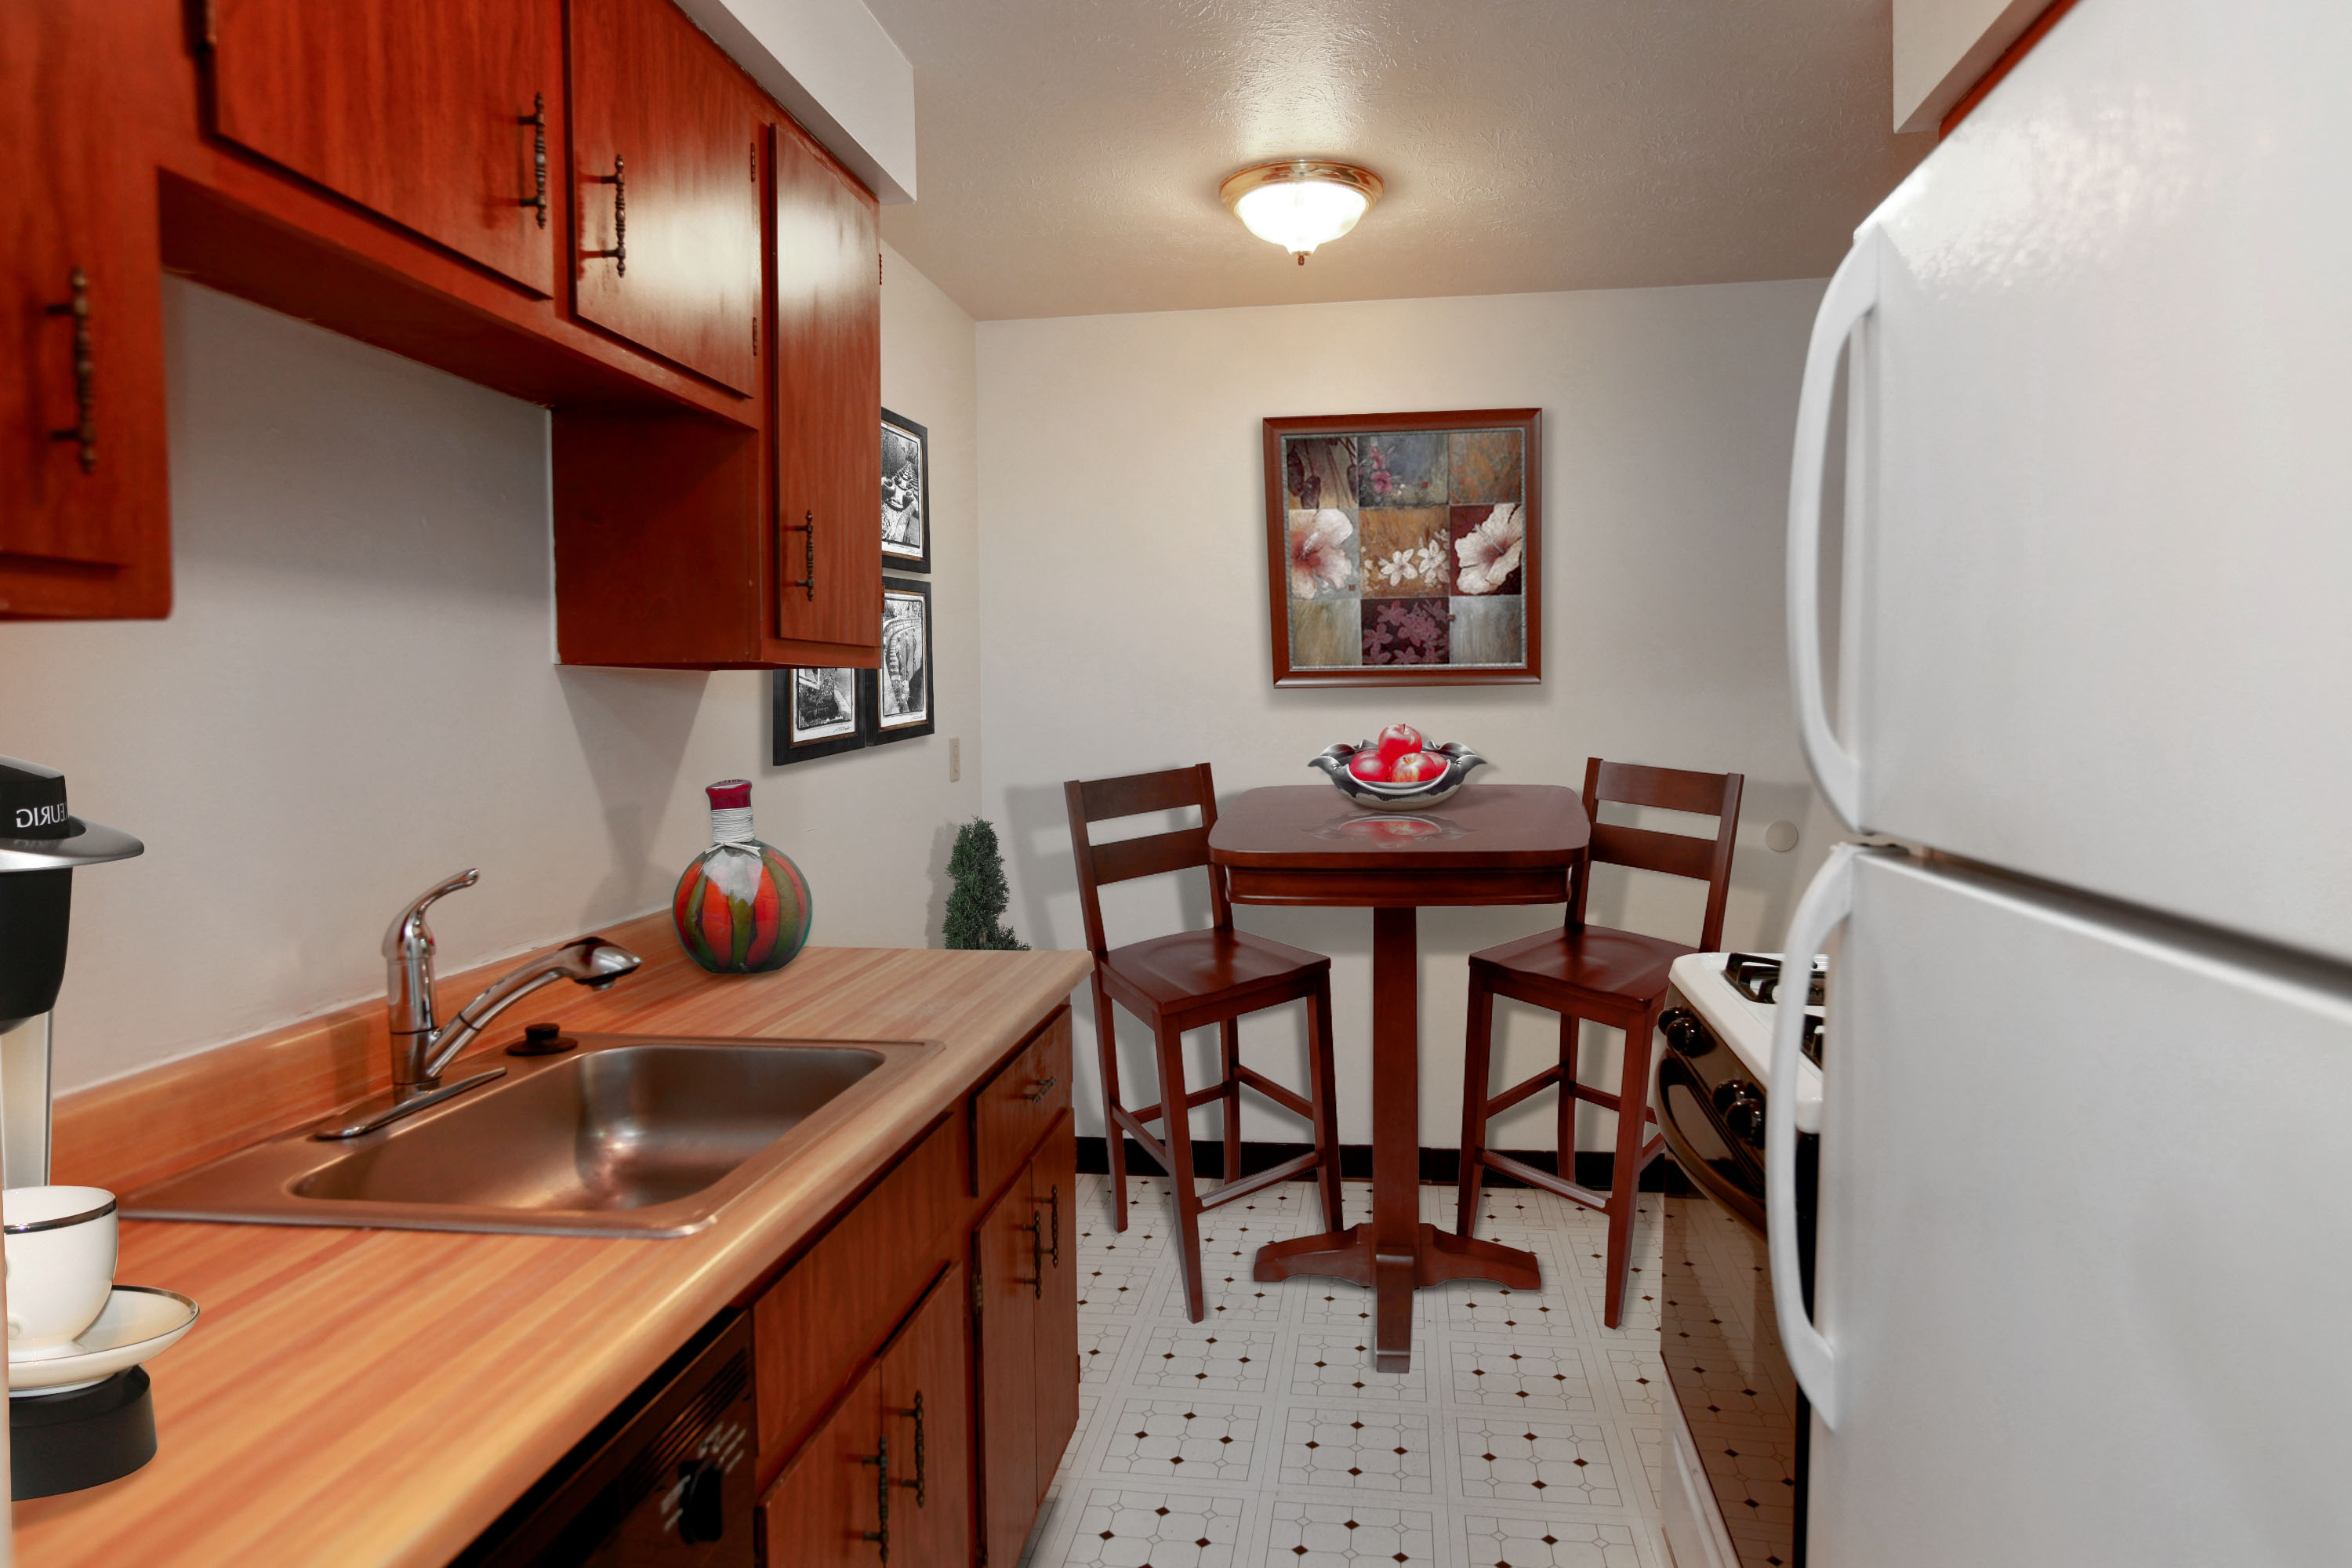 2D Eat-in Kitchen at the Greenridge on Euclid Apartments in Euclid, OH